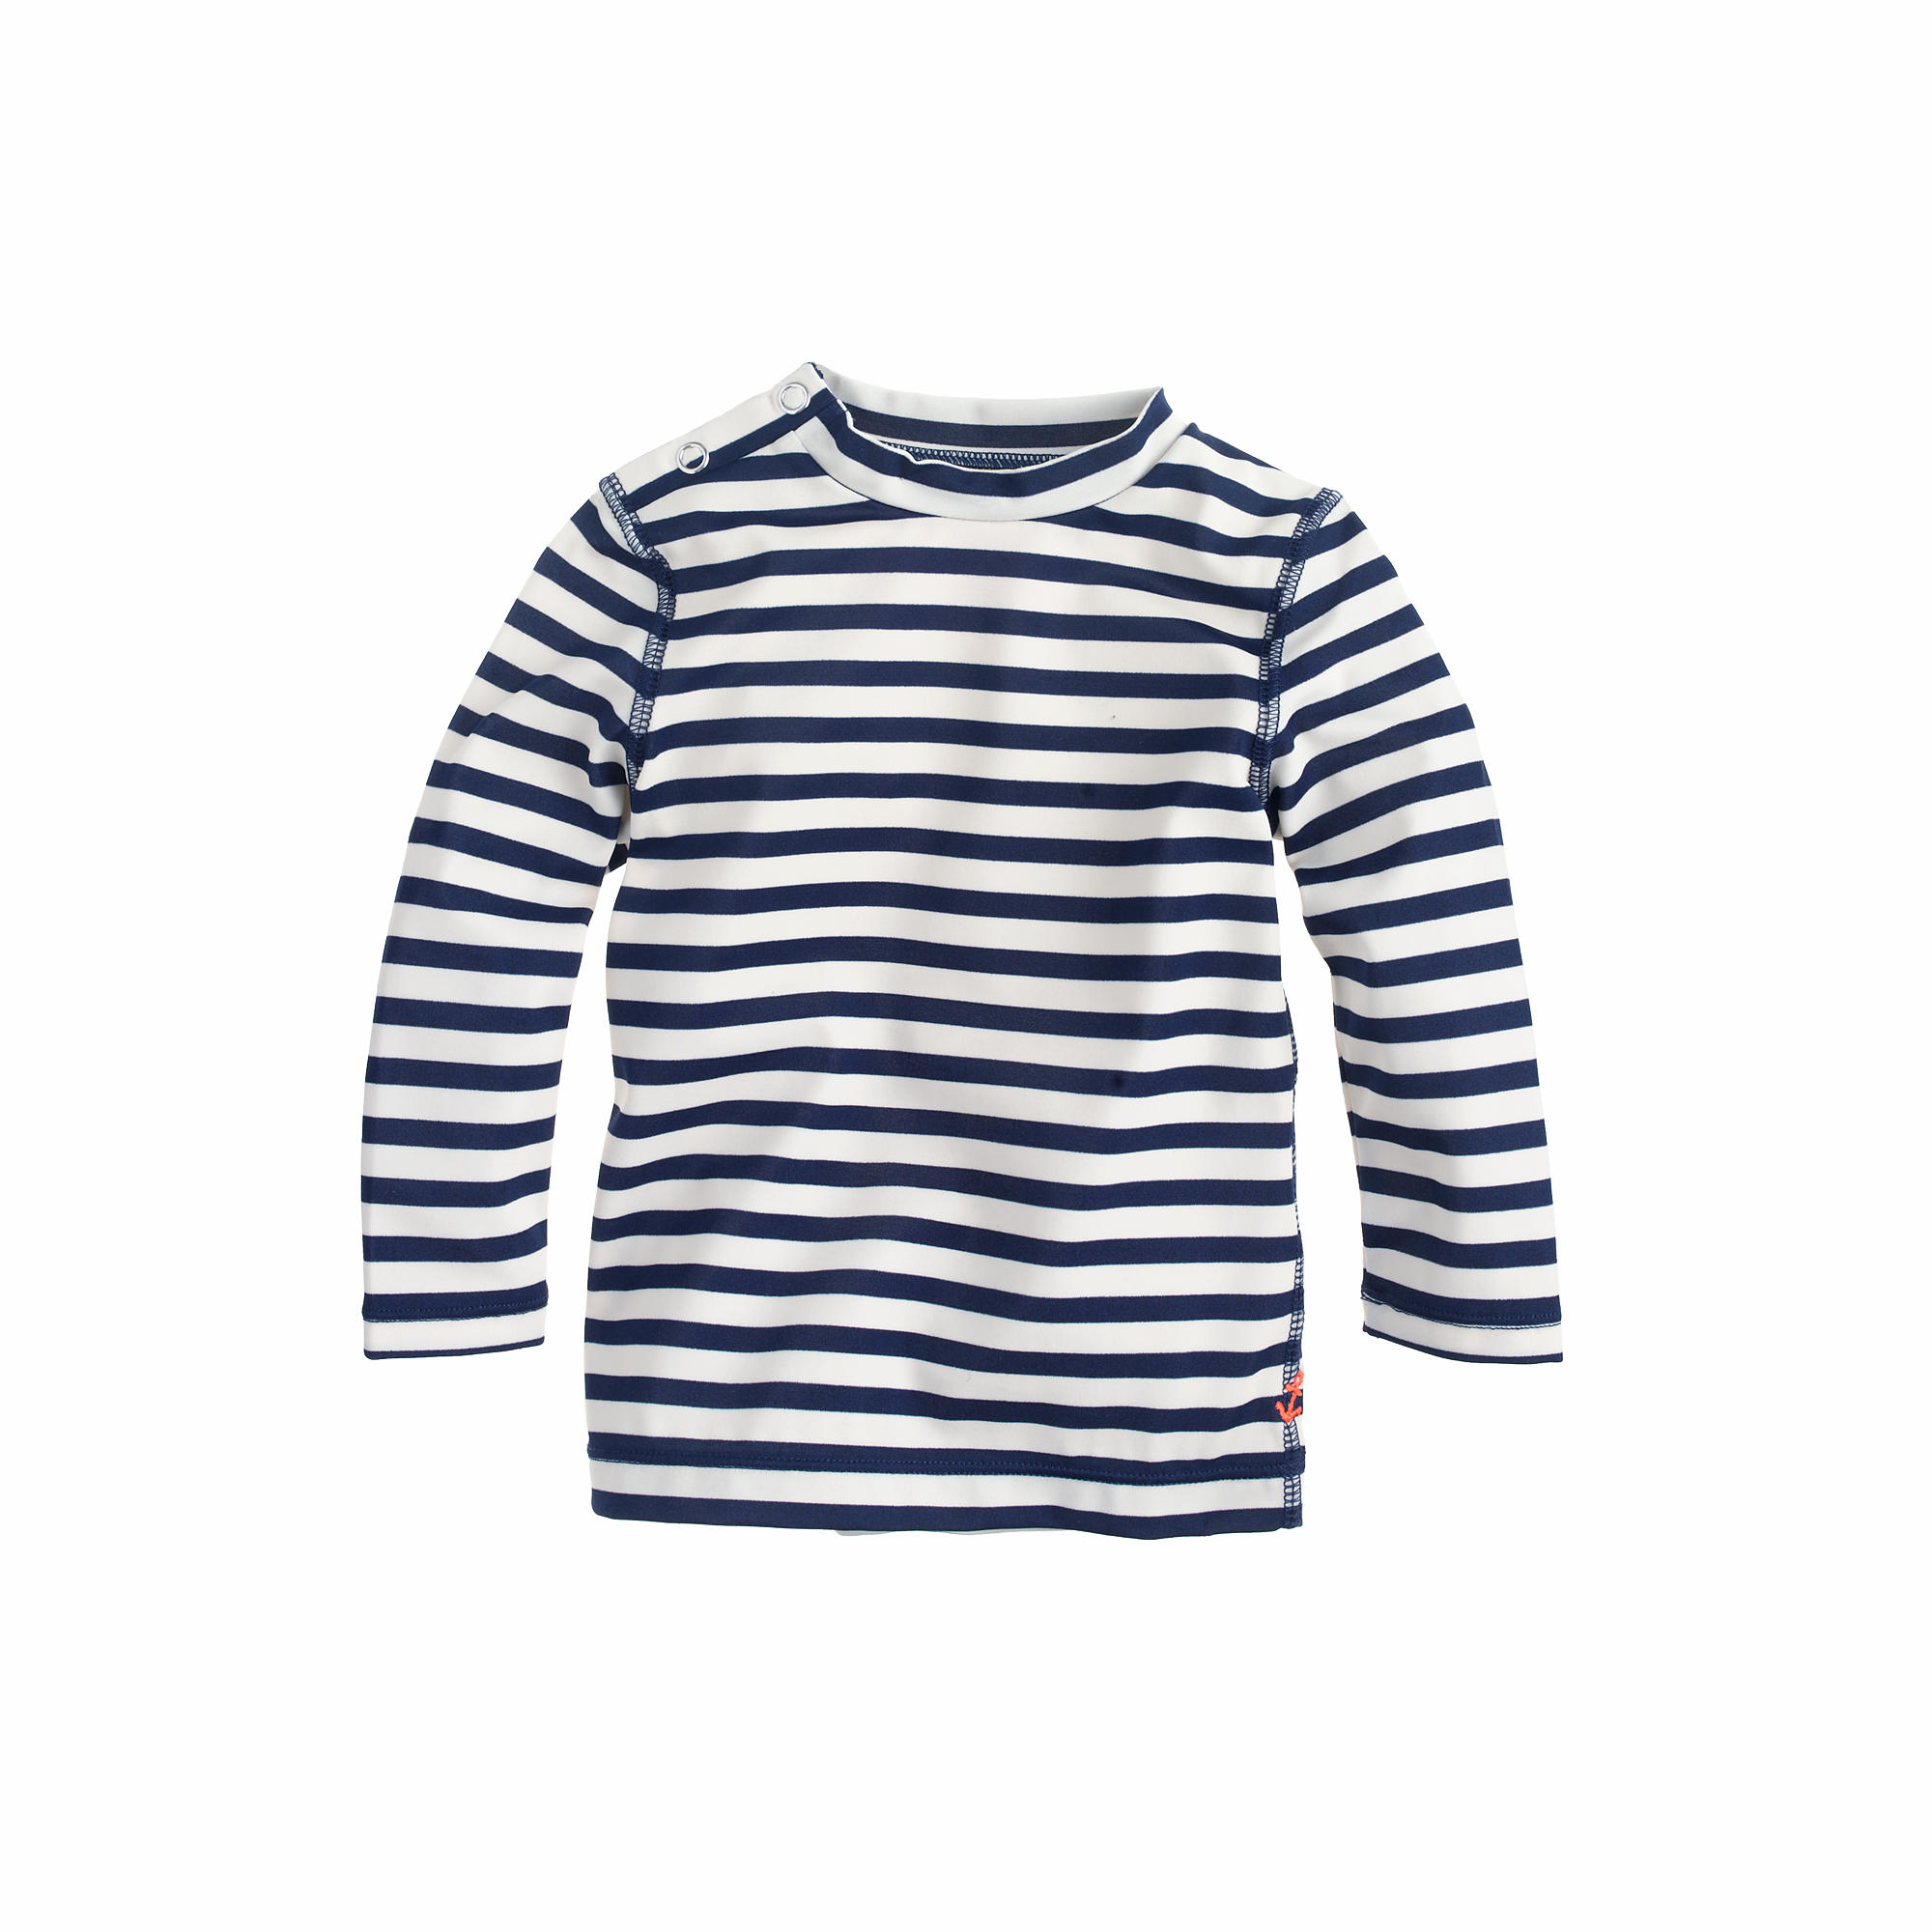 Baby rash guard in stripe swim j crew for Baby rash guard shirt